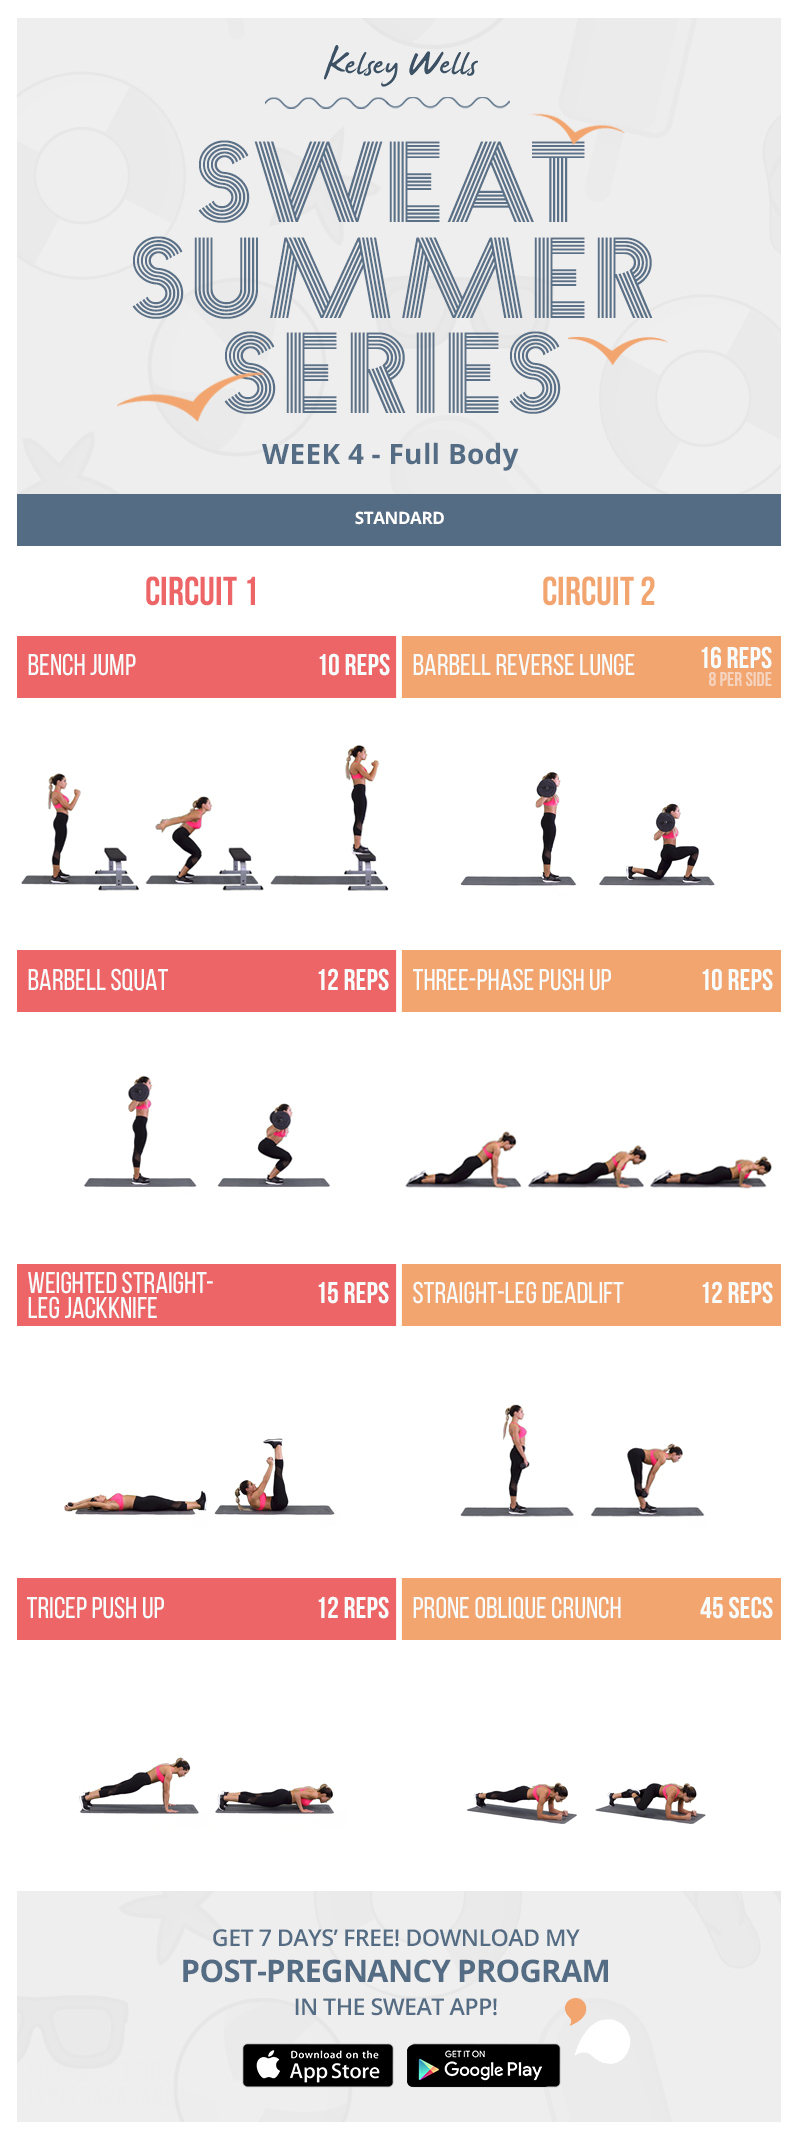 Kelsey Wells Full-Body Circuit PWR Workout